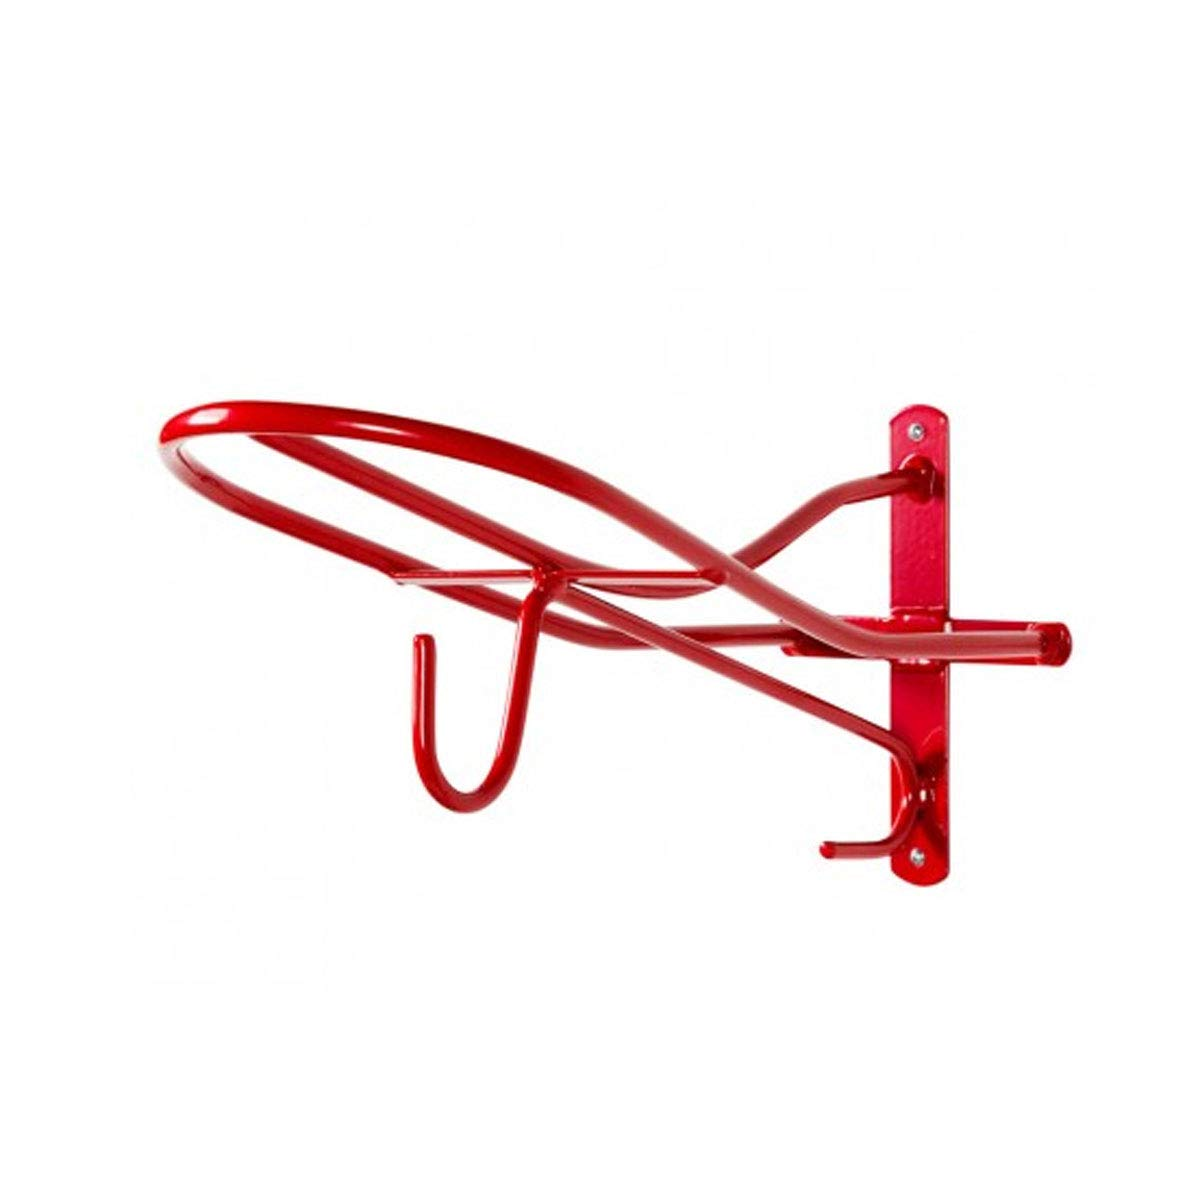 Stubbs Saddle Hook (One Size) (Red) by Stubbs